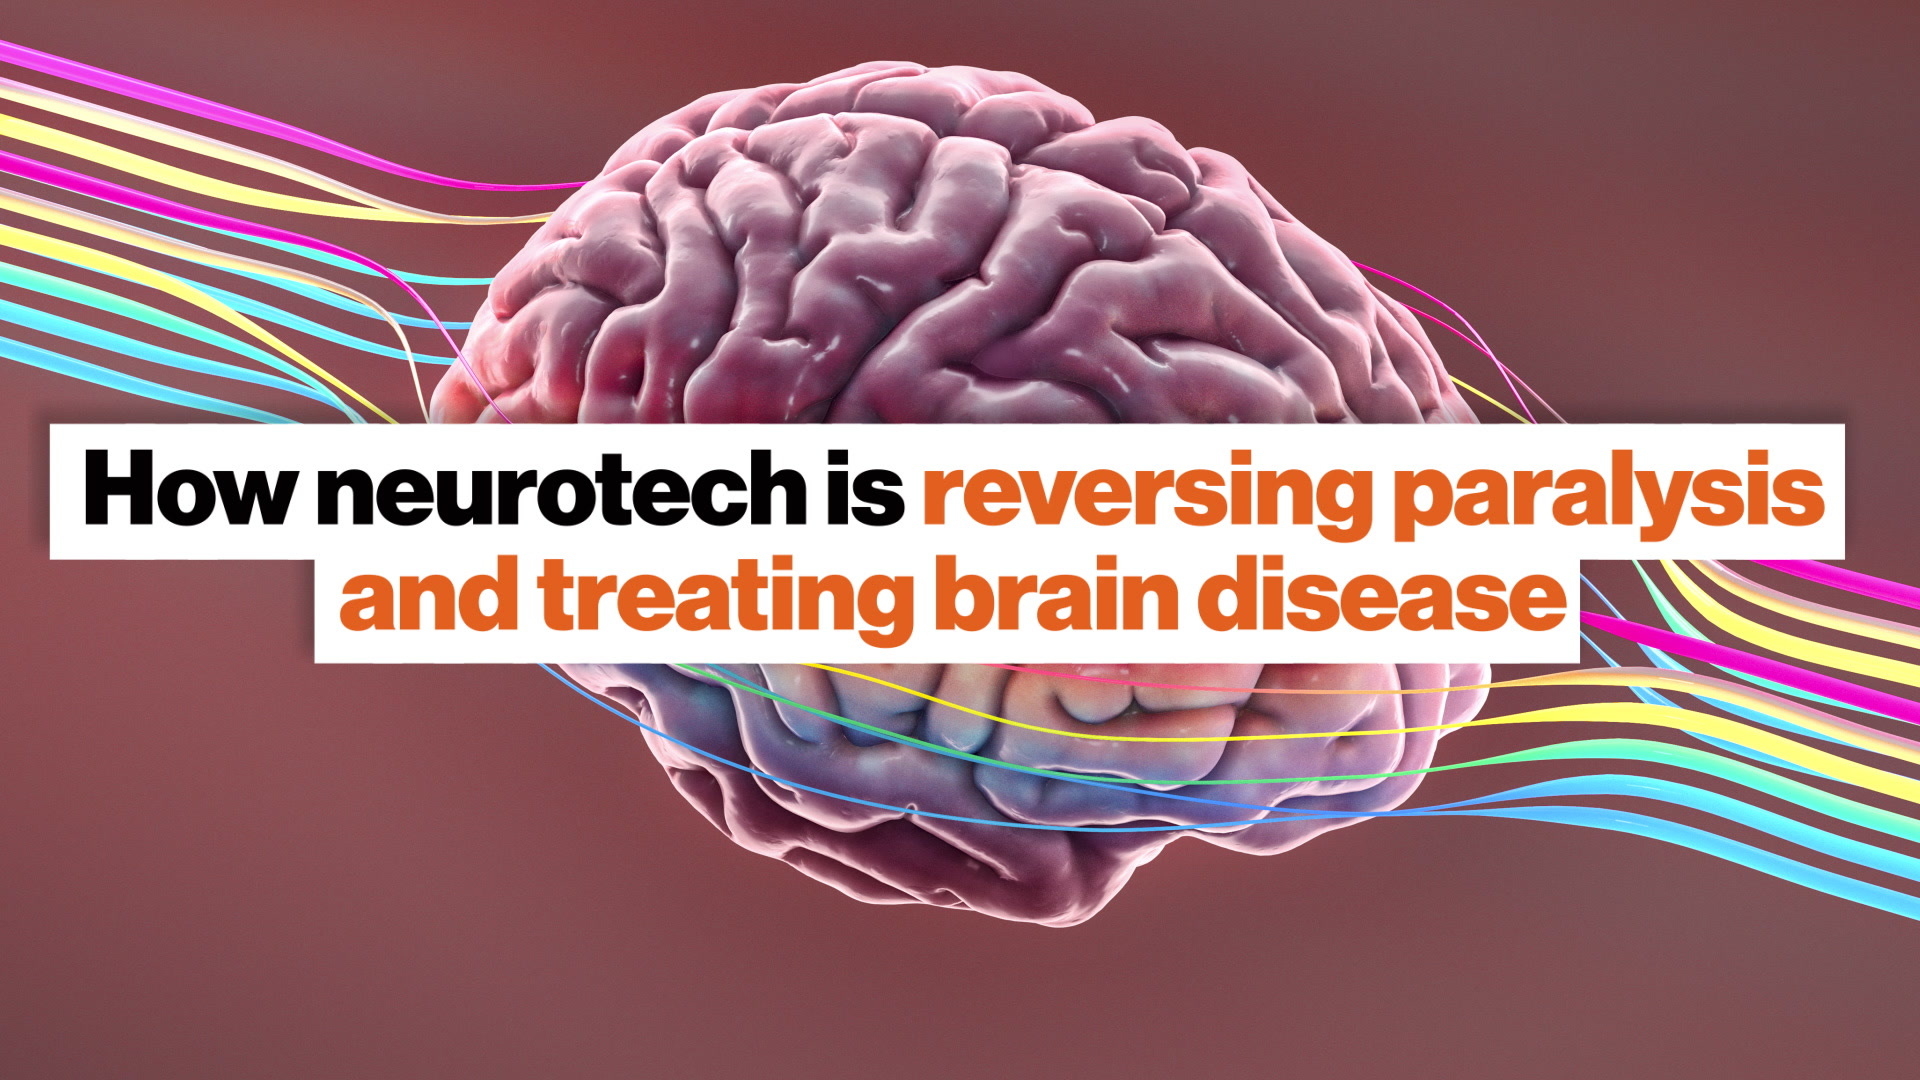 Neuroprosthetics and deep brain stimulation: Two big neuroscience breakthroughs